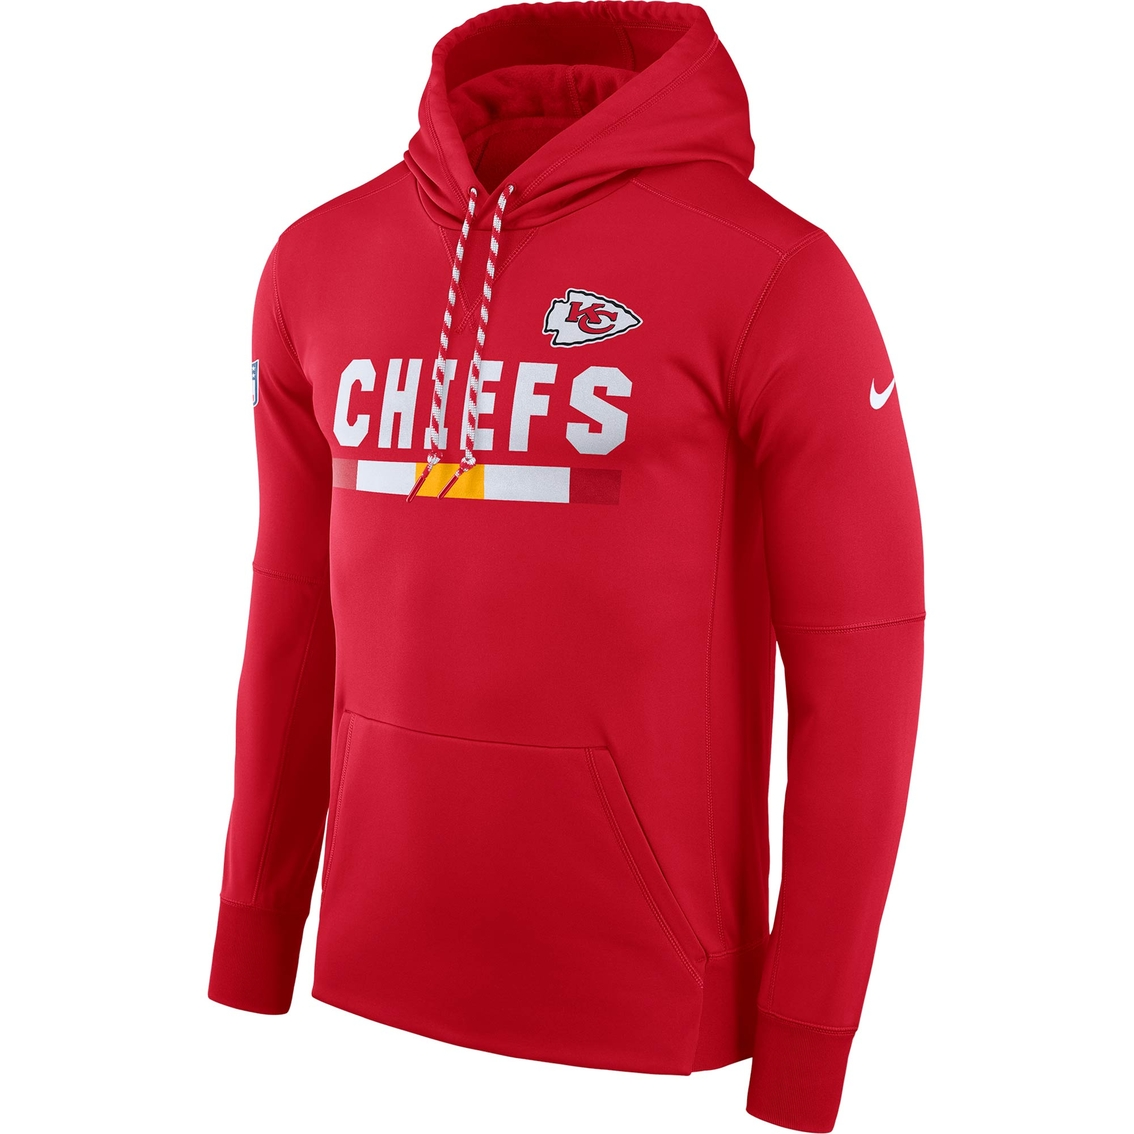 new style various design later Nike Nfl Kansas City Chiefs Therma Hoodie | Hoodies & Jackets ...